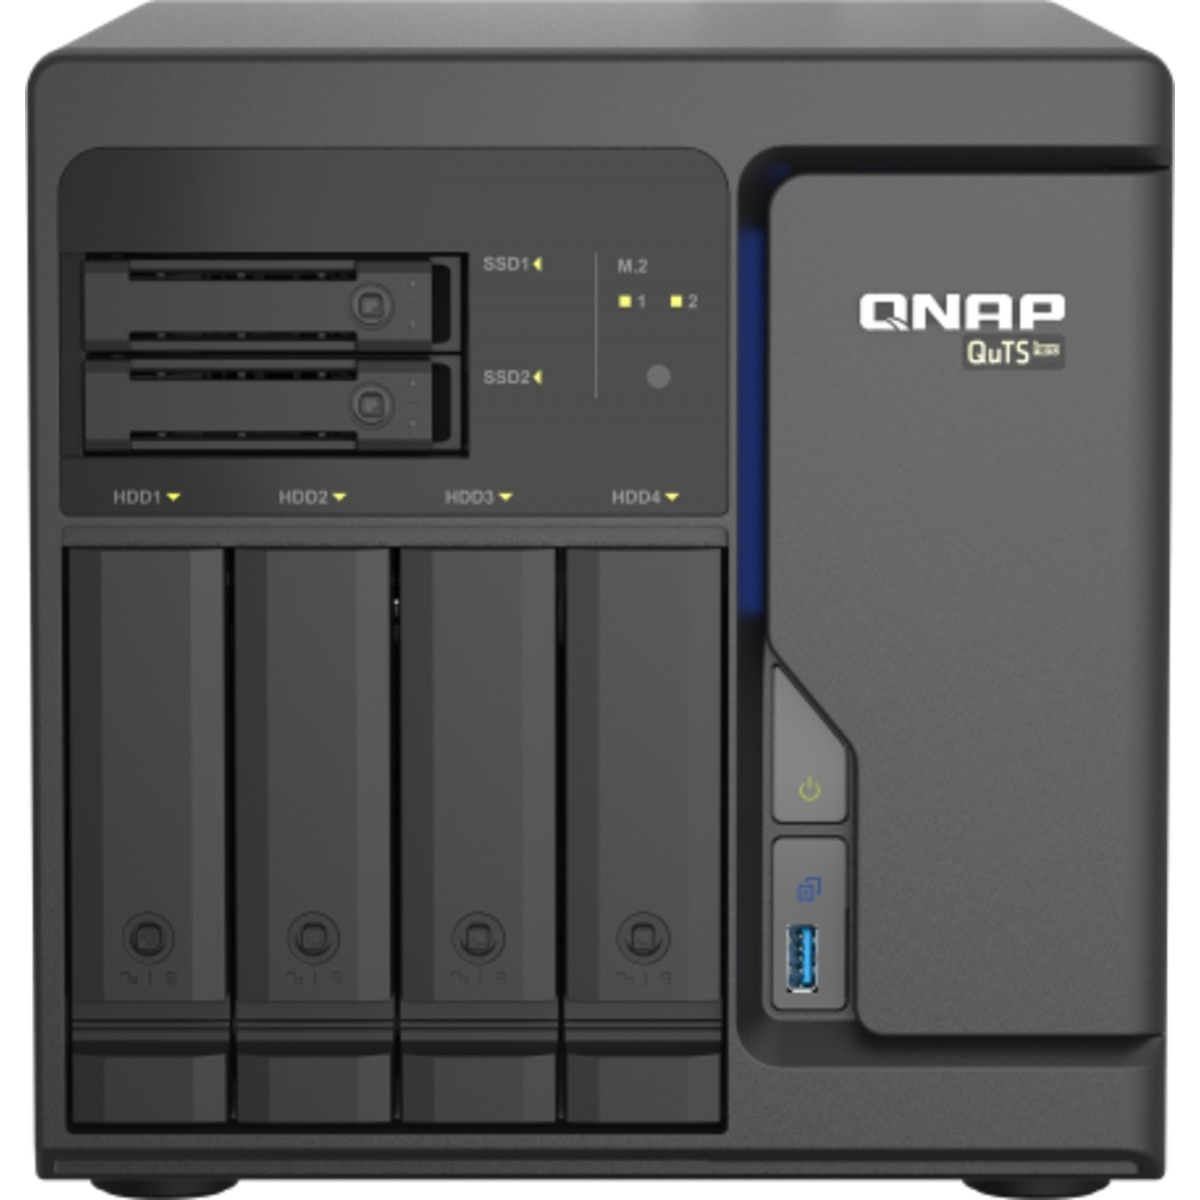 buy $1835 QNAP TS-h686 QuTS hero NAS 16tb Desktop NAS - Network Attached Storage Device 4x4000gb Toshiba MD04ACA Series MD04ACA400 3.5 7200rpm SATA 6Gb/s HDD CONSUMER Class Drives Installed - Burn-In Tested - ON SALE - nas headquarters buy network attached storage server device das new raid-5 free shipping usa holiday new year clearance sale TS-h686 QuTS hero NAS